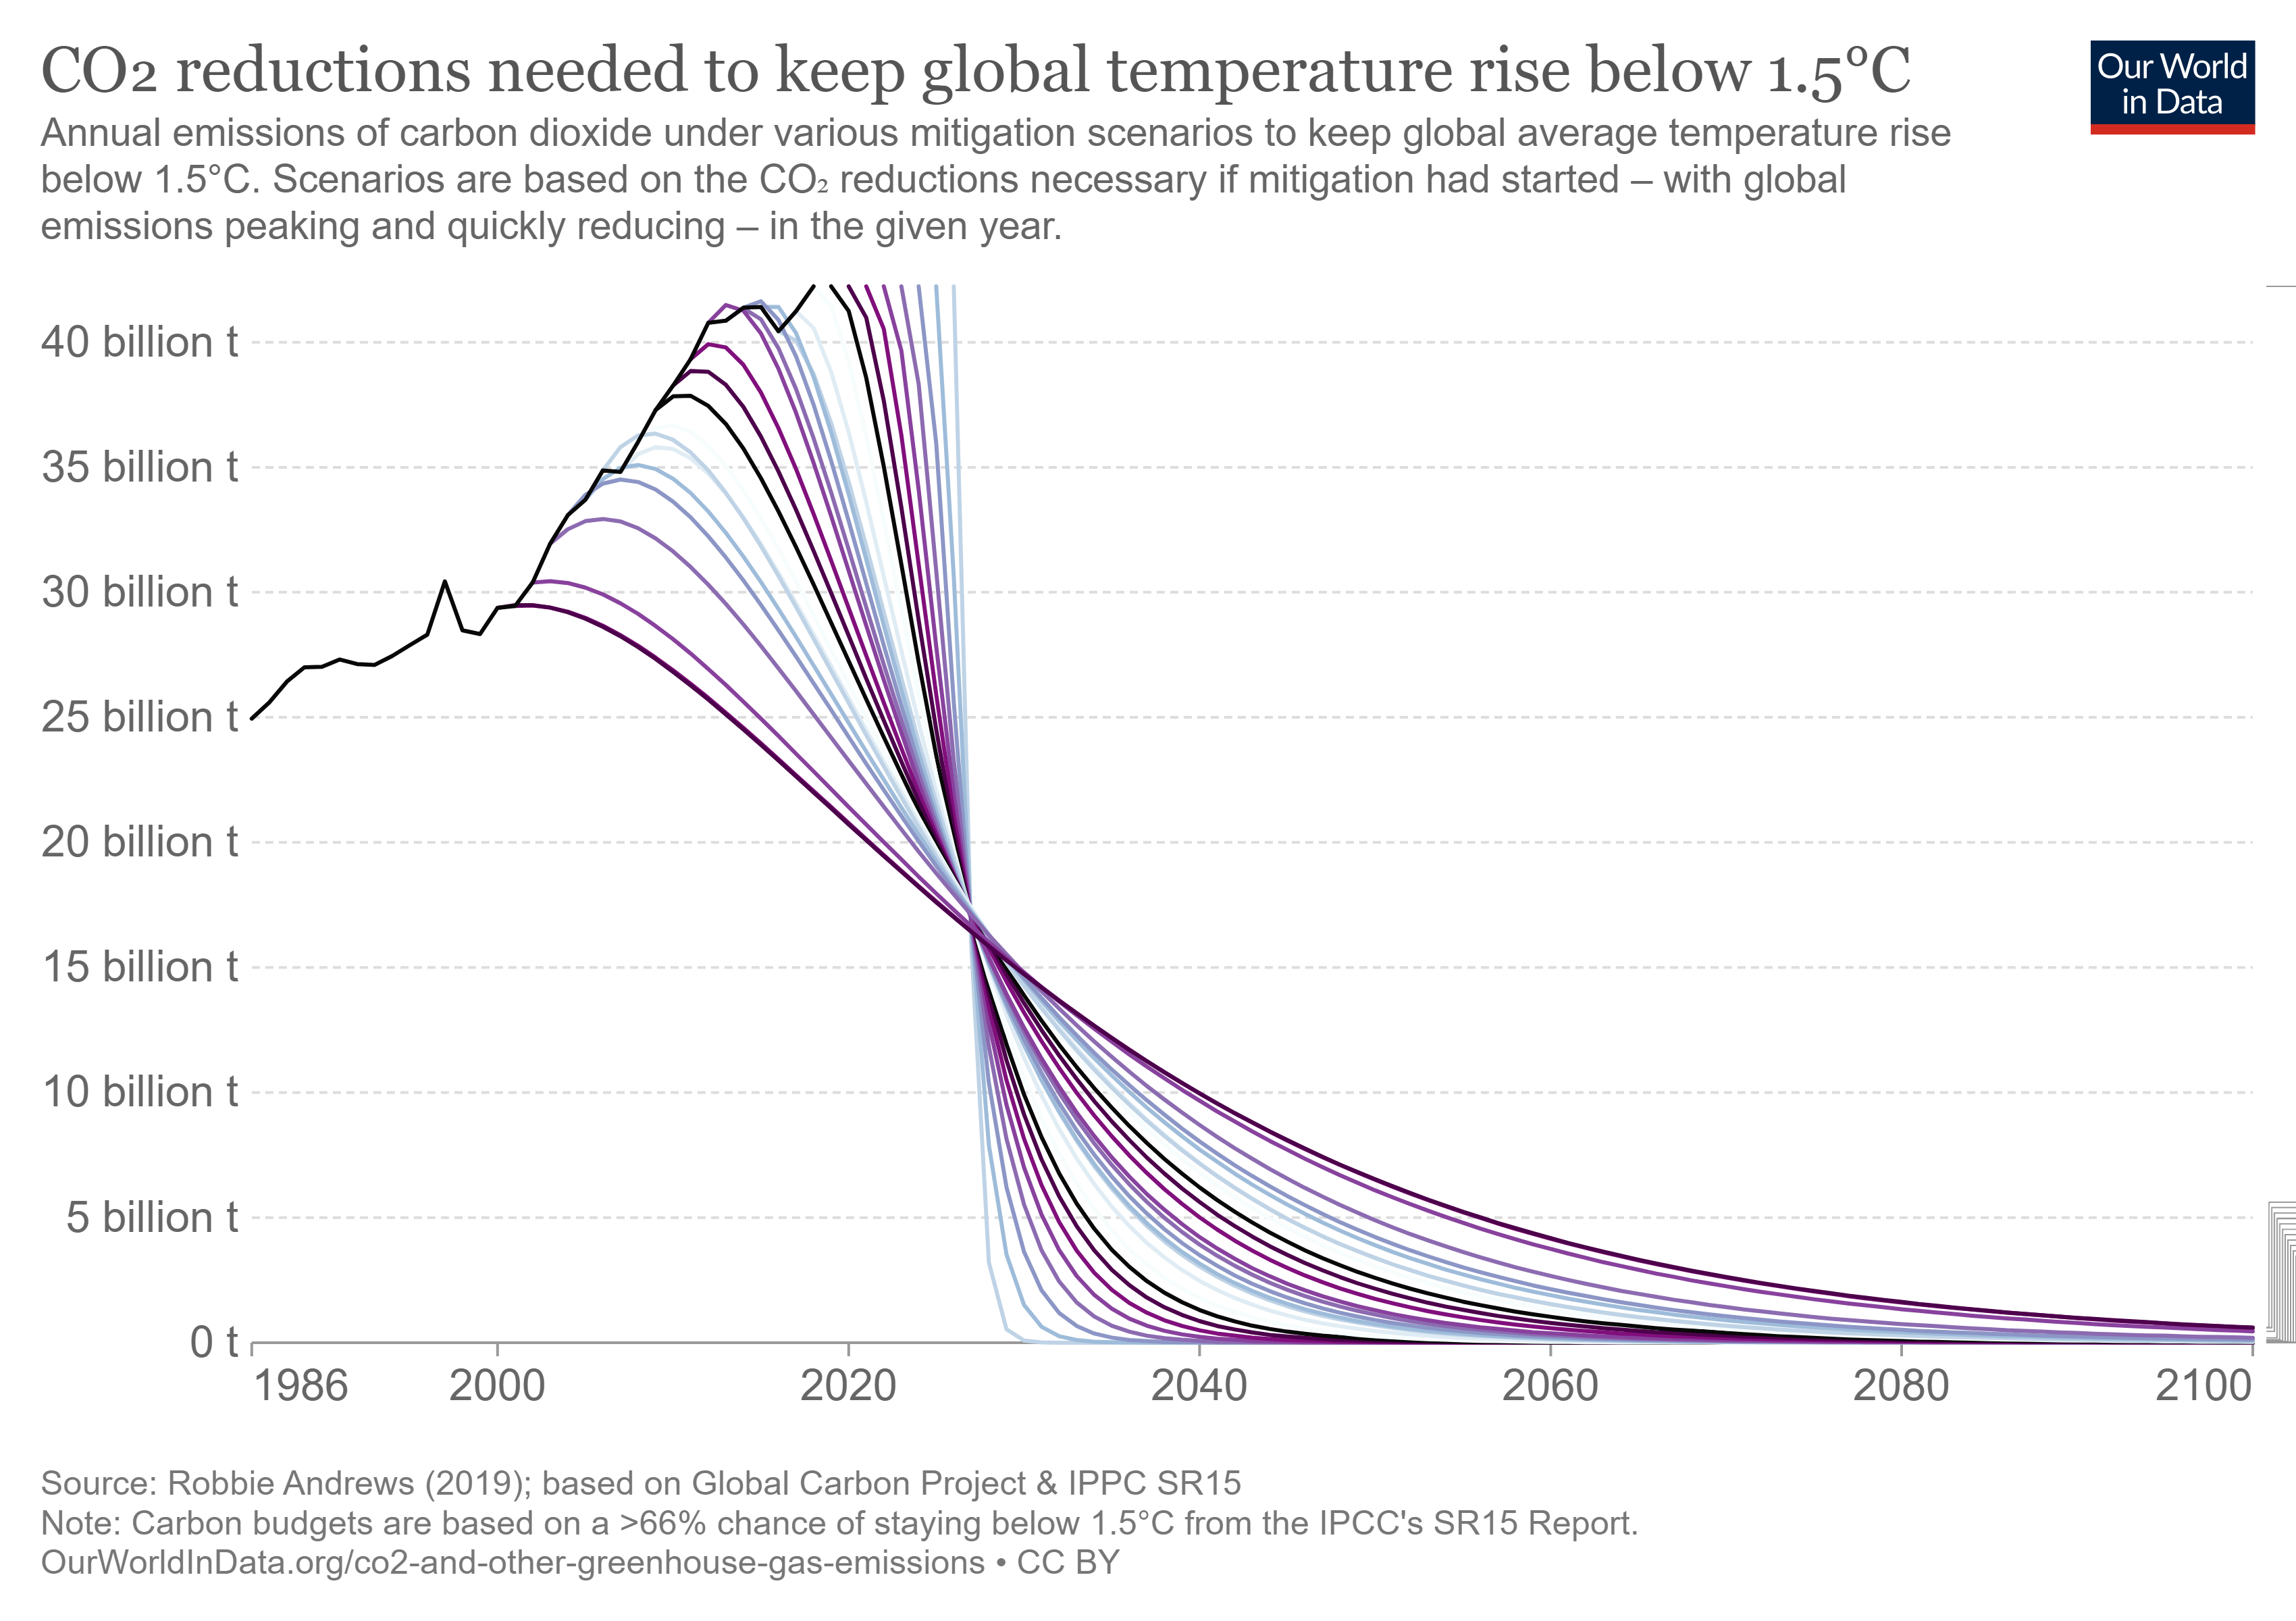 Reduction in CO2 emissions needed to keep global temperature rise below 1.5°C